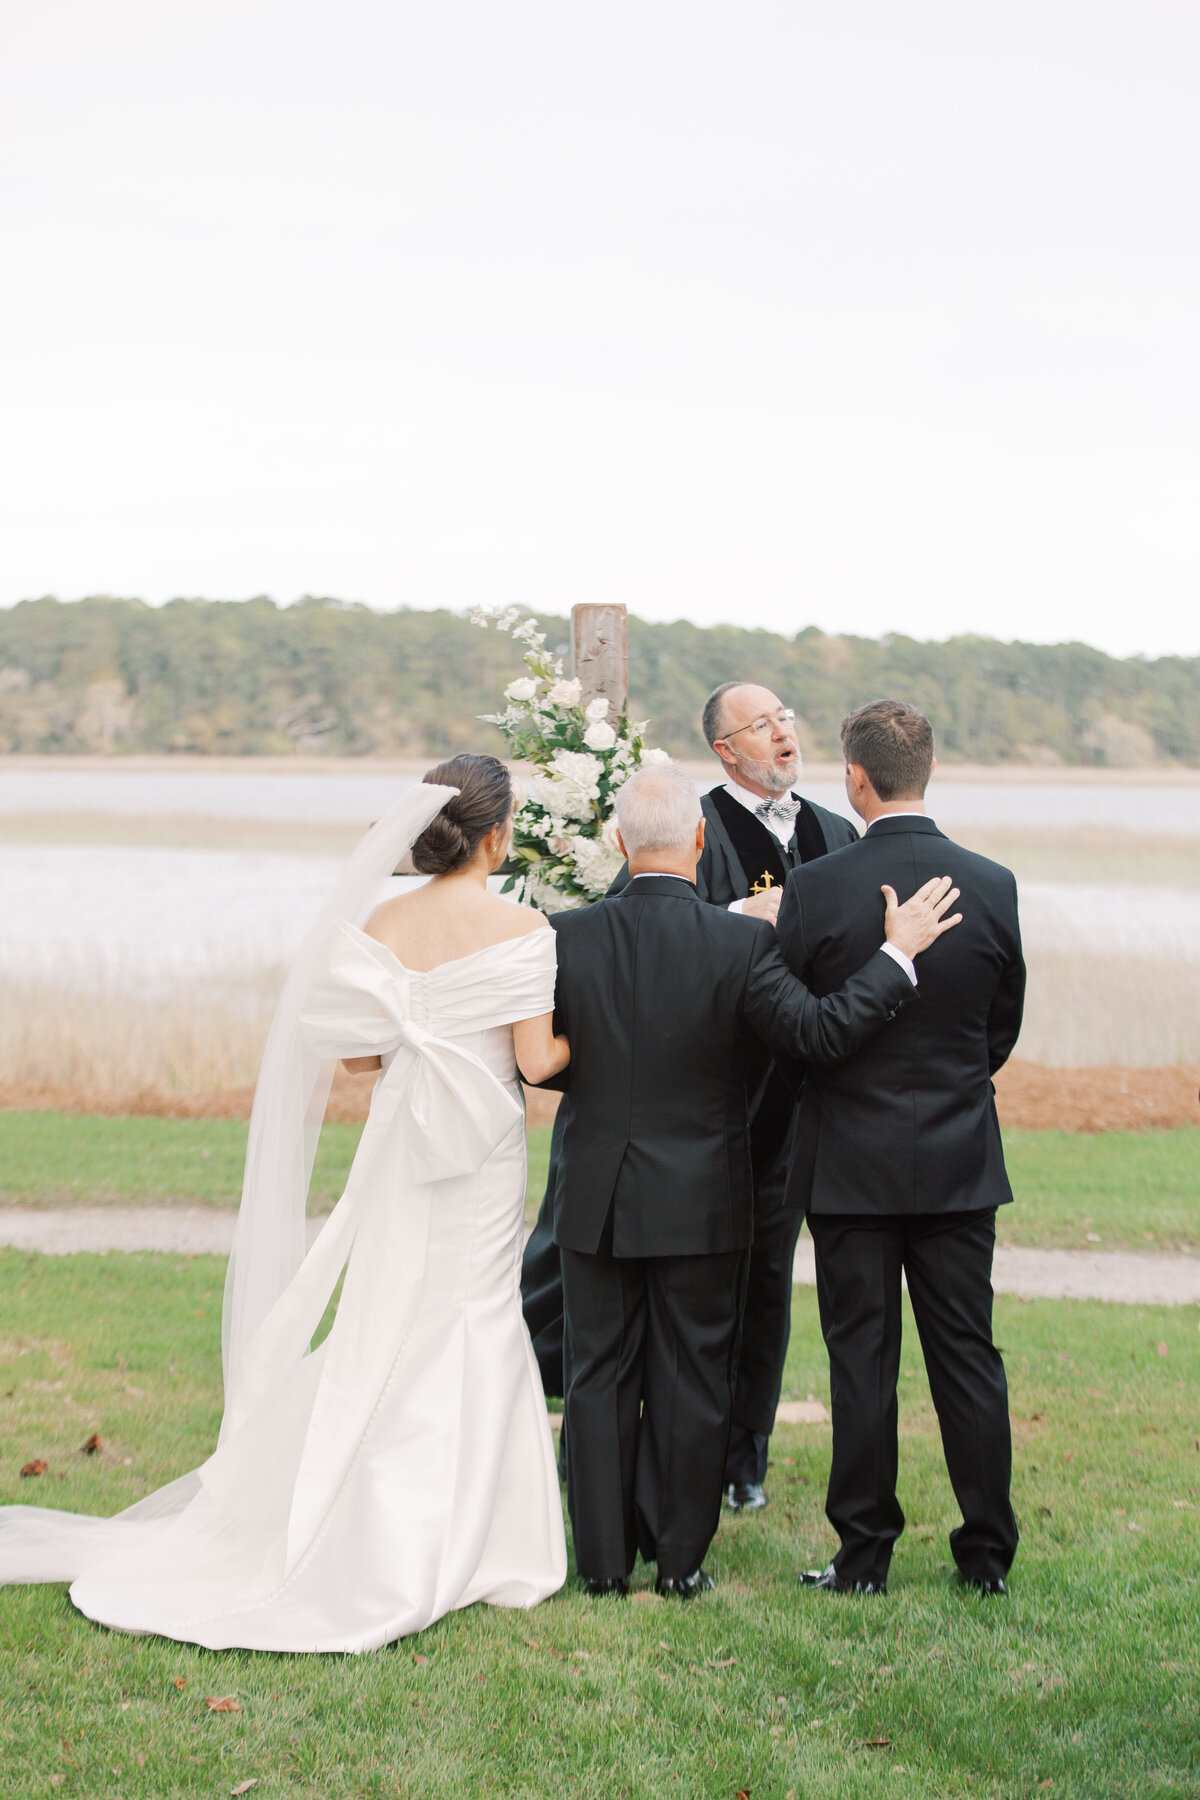 Powell_Oldfield_River_Club_Bluffton_South_Carolina_Beaufort_Savannah_Wedding_Jacksonville_Florida_Devon_Donnahoo_Photography_0545